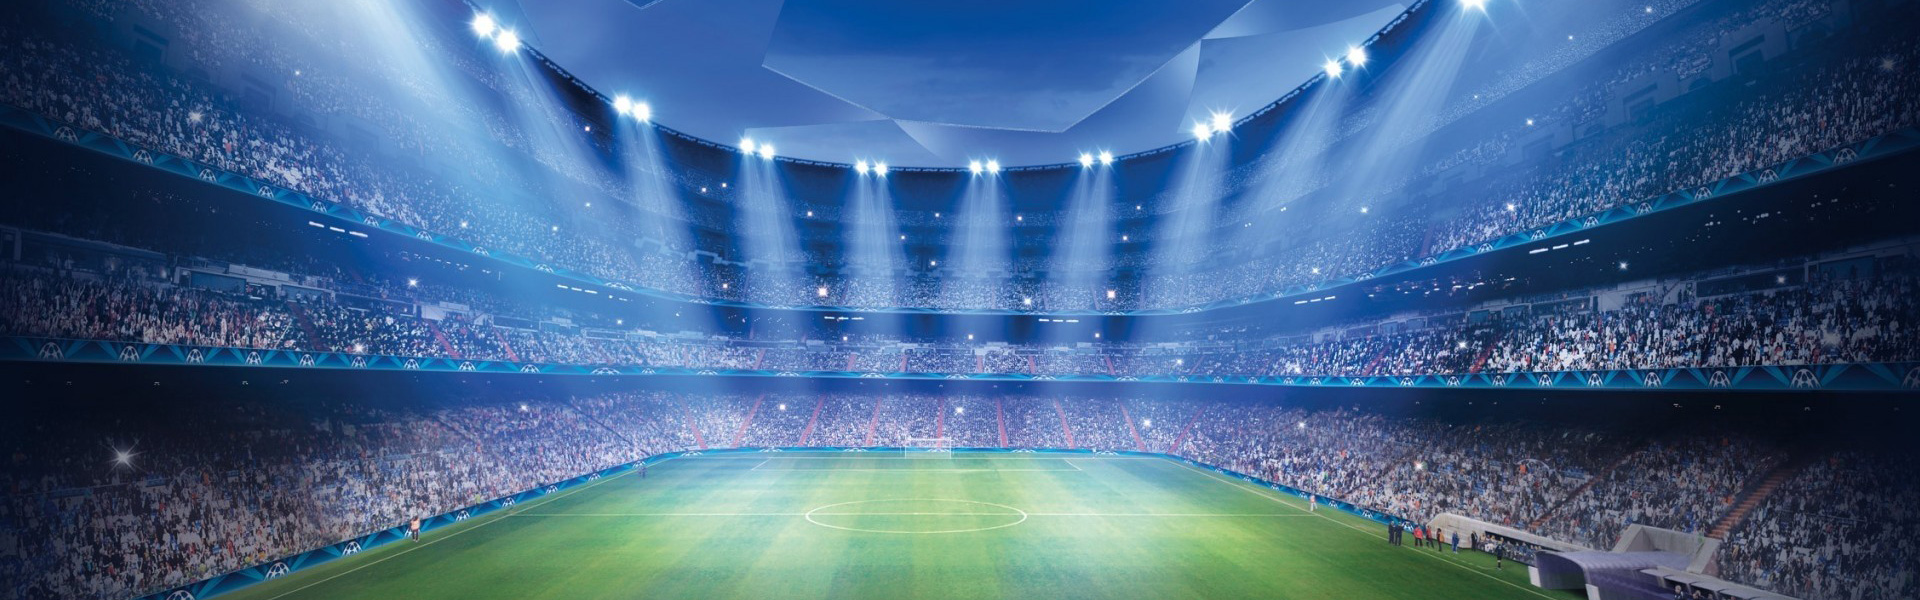 Free Fall Photos Wallpaper Stadium Background Photos Stadium Background Vectors And